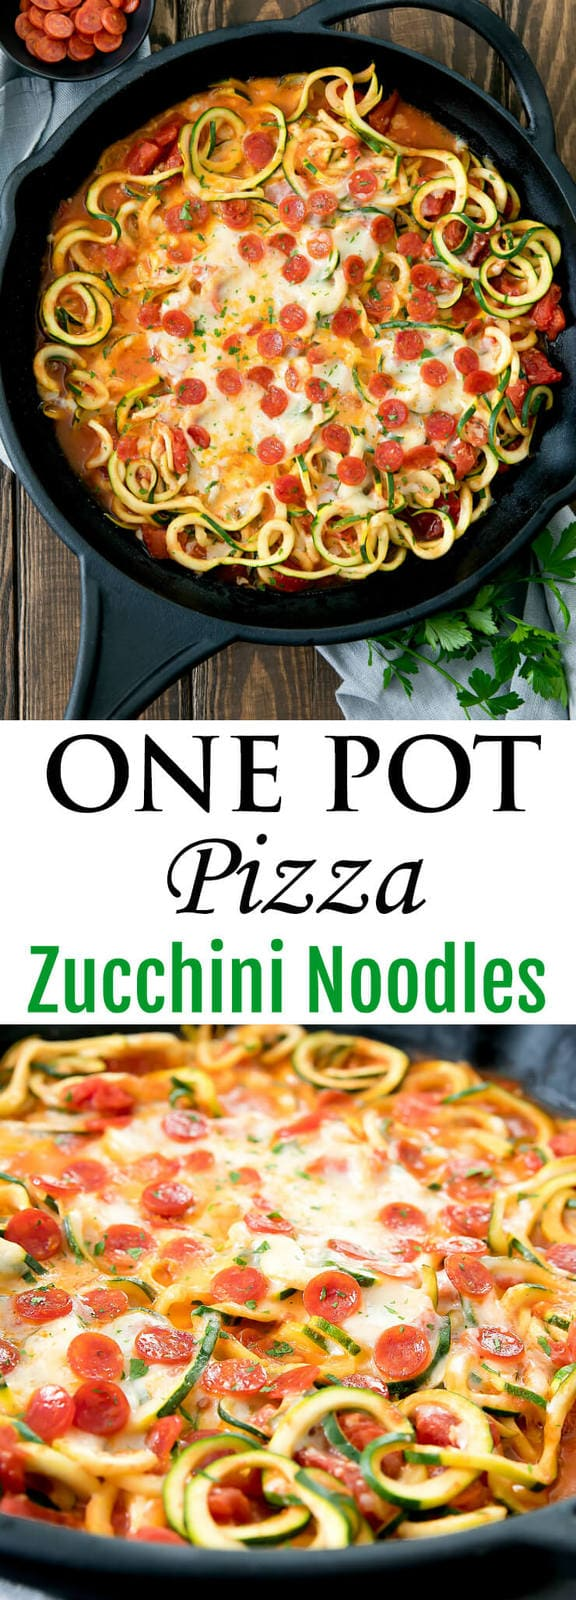 One Pot Pizza Zucchini Noodles. A lightened up version of pizza pasta, ready in less than 30 minutes.